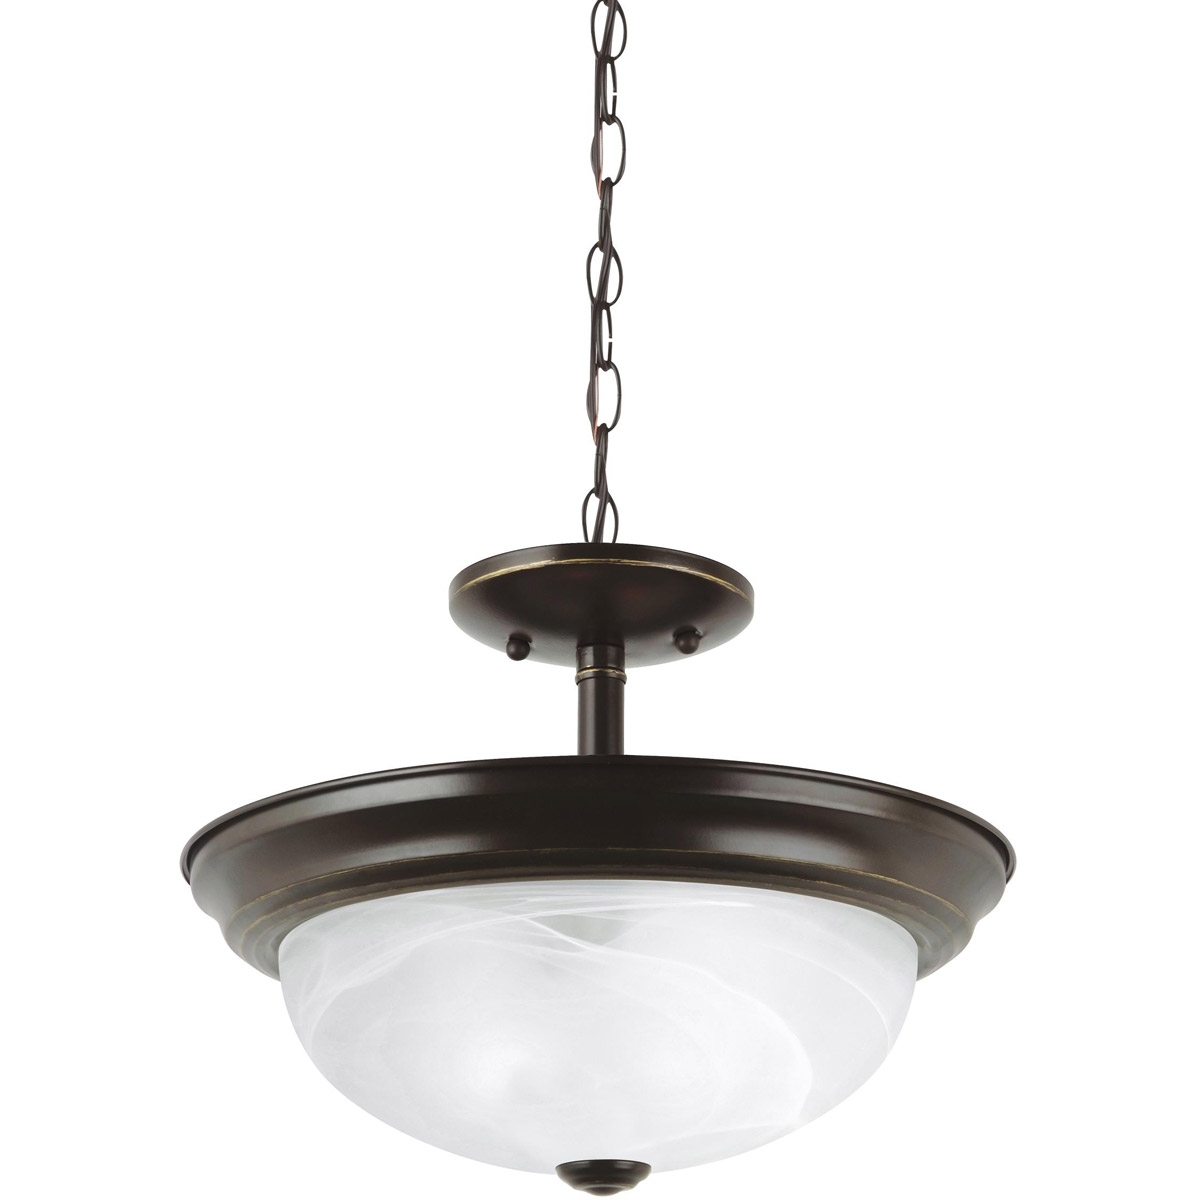 Sea Gull Lighting Windgate 2 Light Semi-Flush Mount in Heirloom Bronze 77950-782